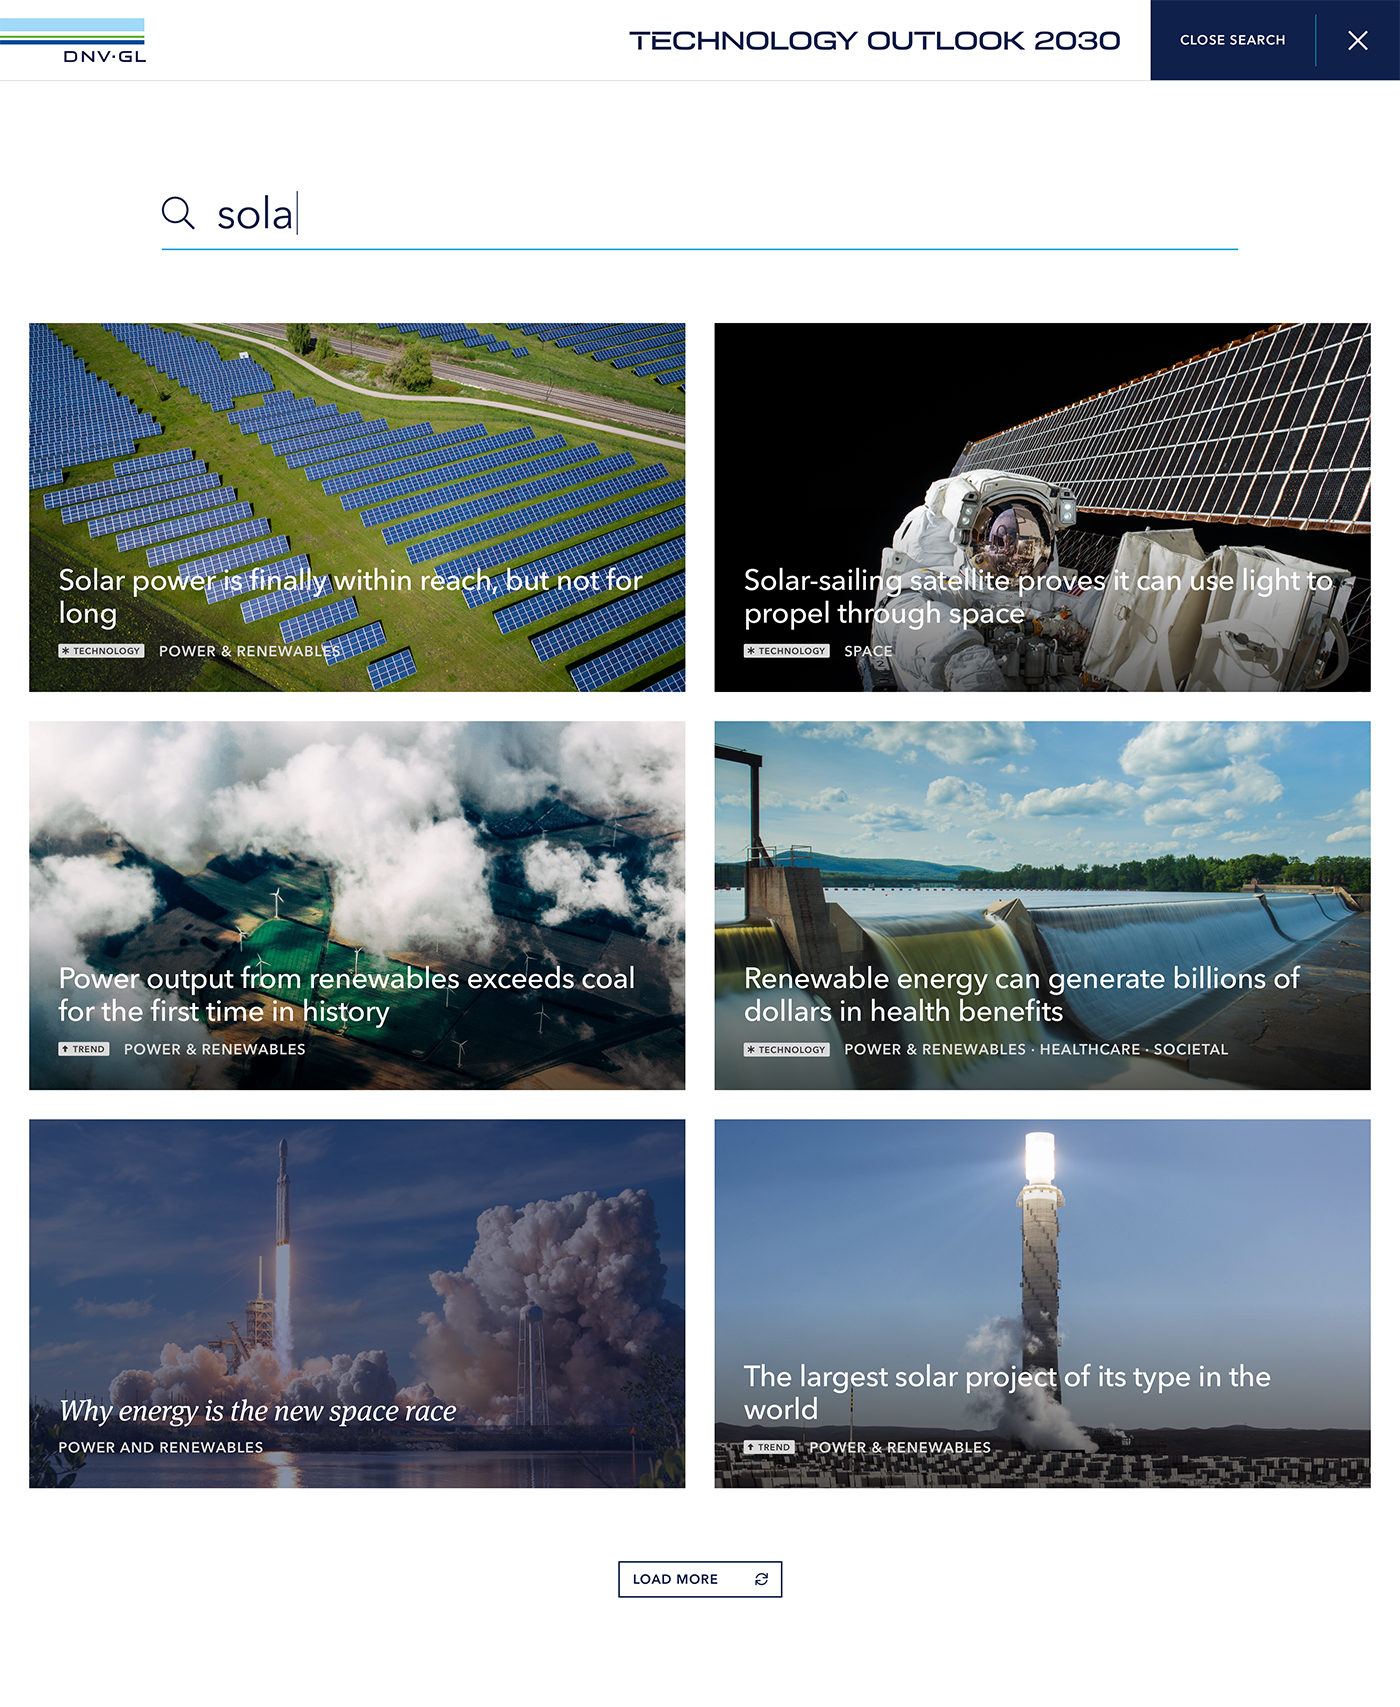 dnv-gl_technology-outlook_search